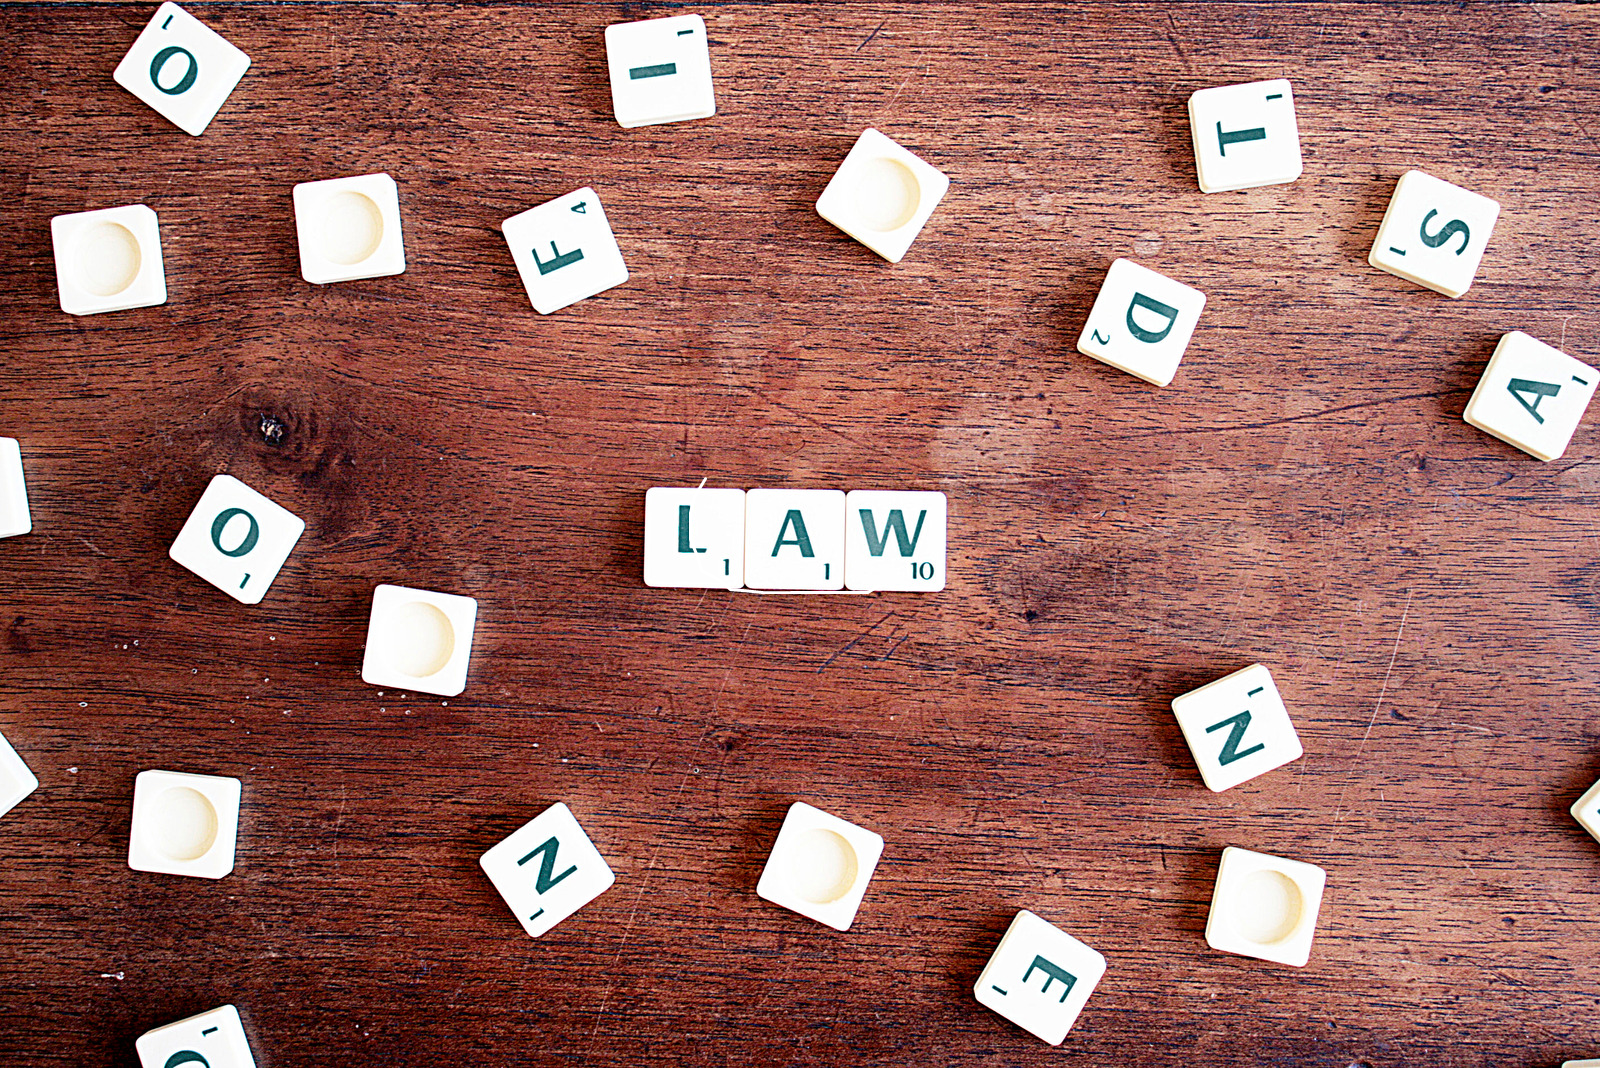 """Scrabble tiles on a table with three tiles in the middle that spell out """"law"""""""